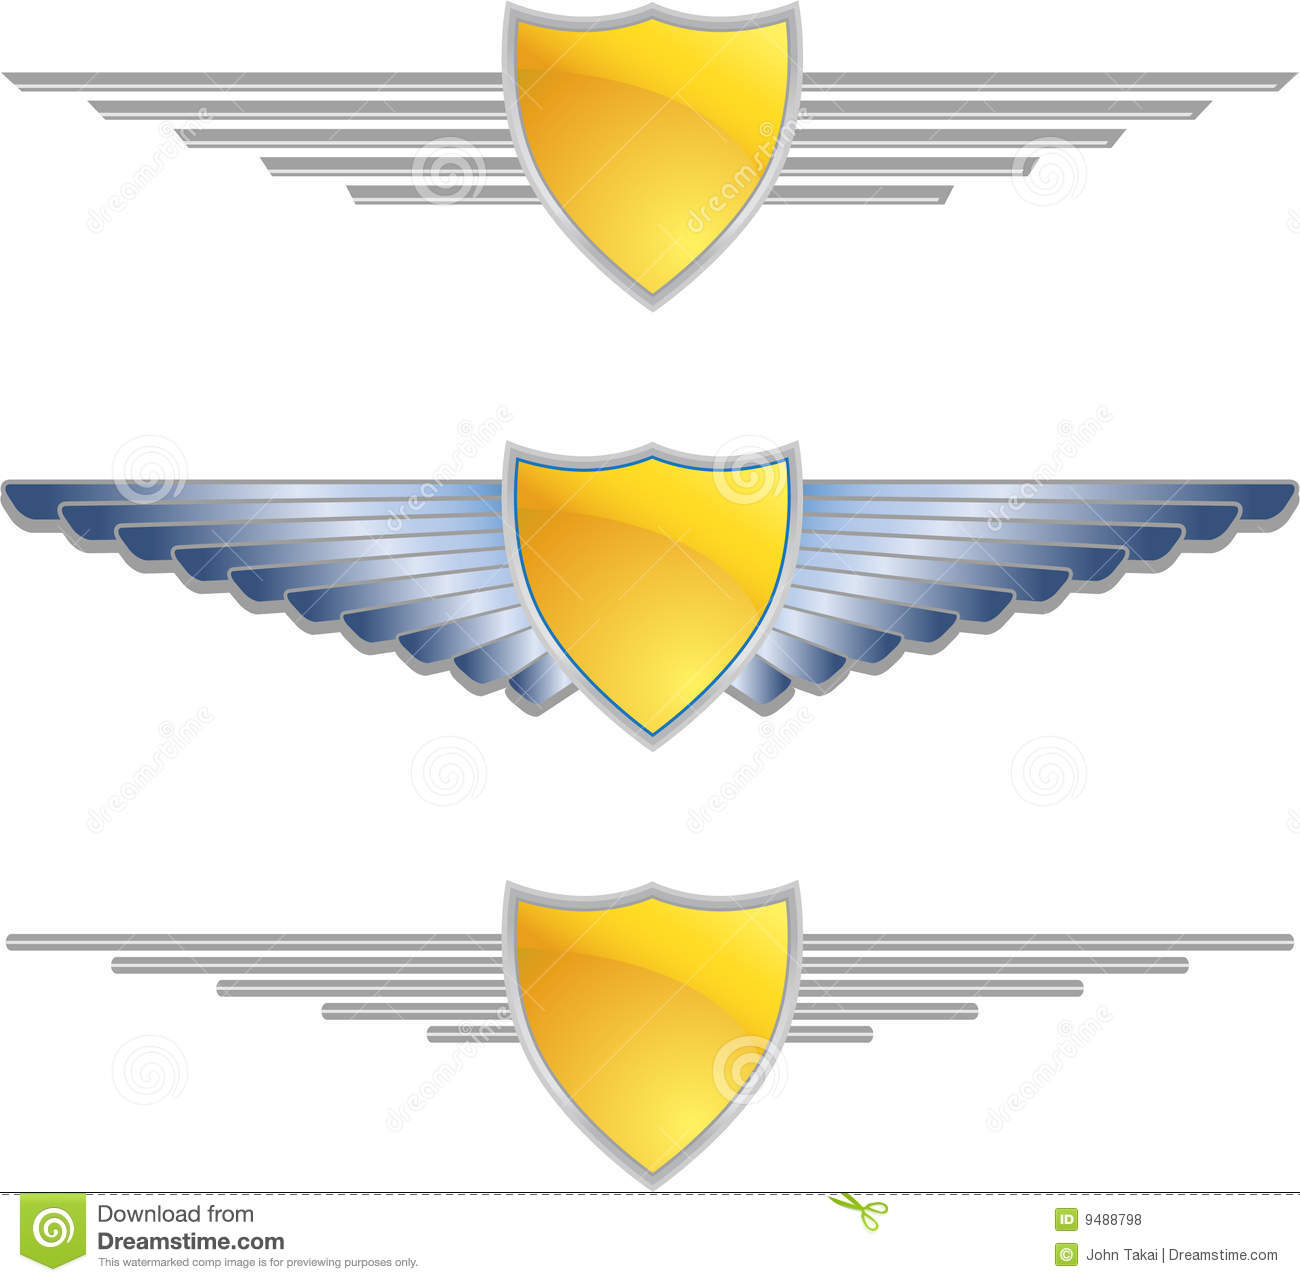 Shield design set royalty free stock photos image 5051988 - Gold Shield Wings Royalty Free Stock Photos